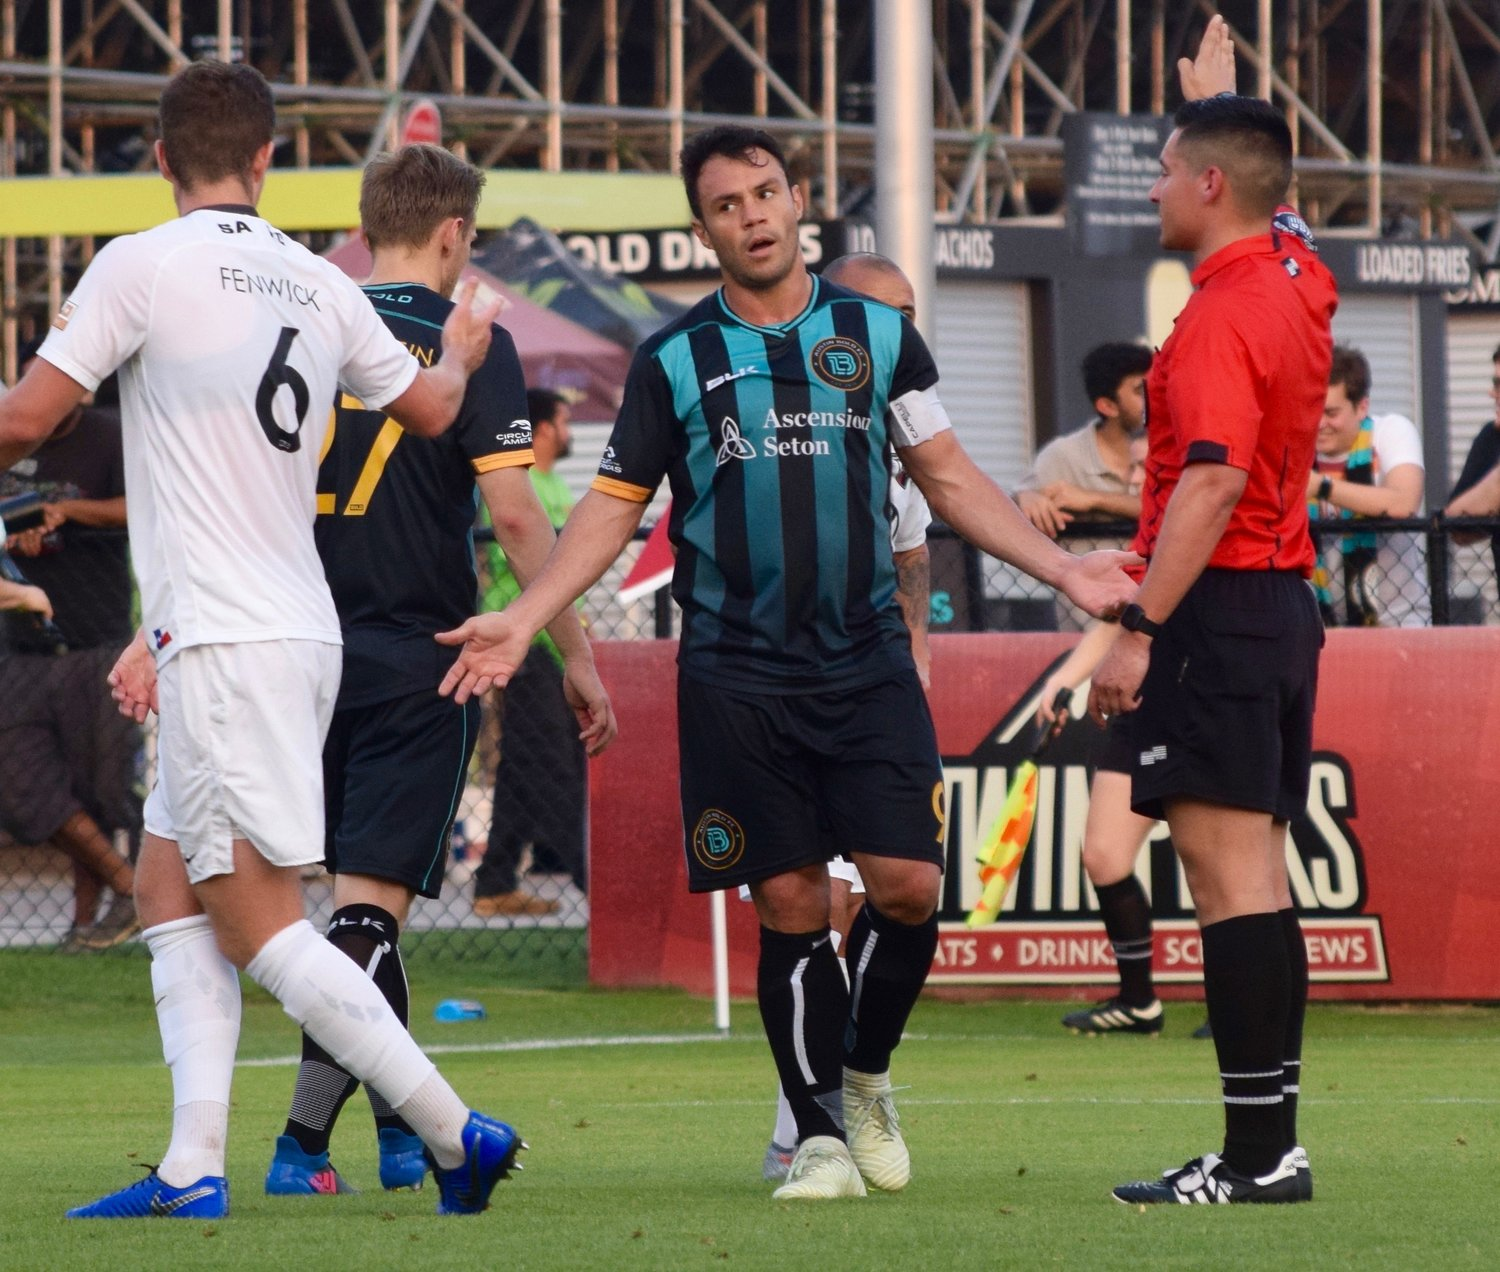 Klèber scored a goal as Austin Bold FC beat San Antonio FC 4-2 on Wednesday night in the third round of the U.S. Open Cup.